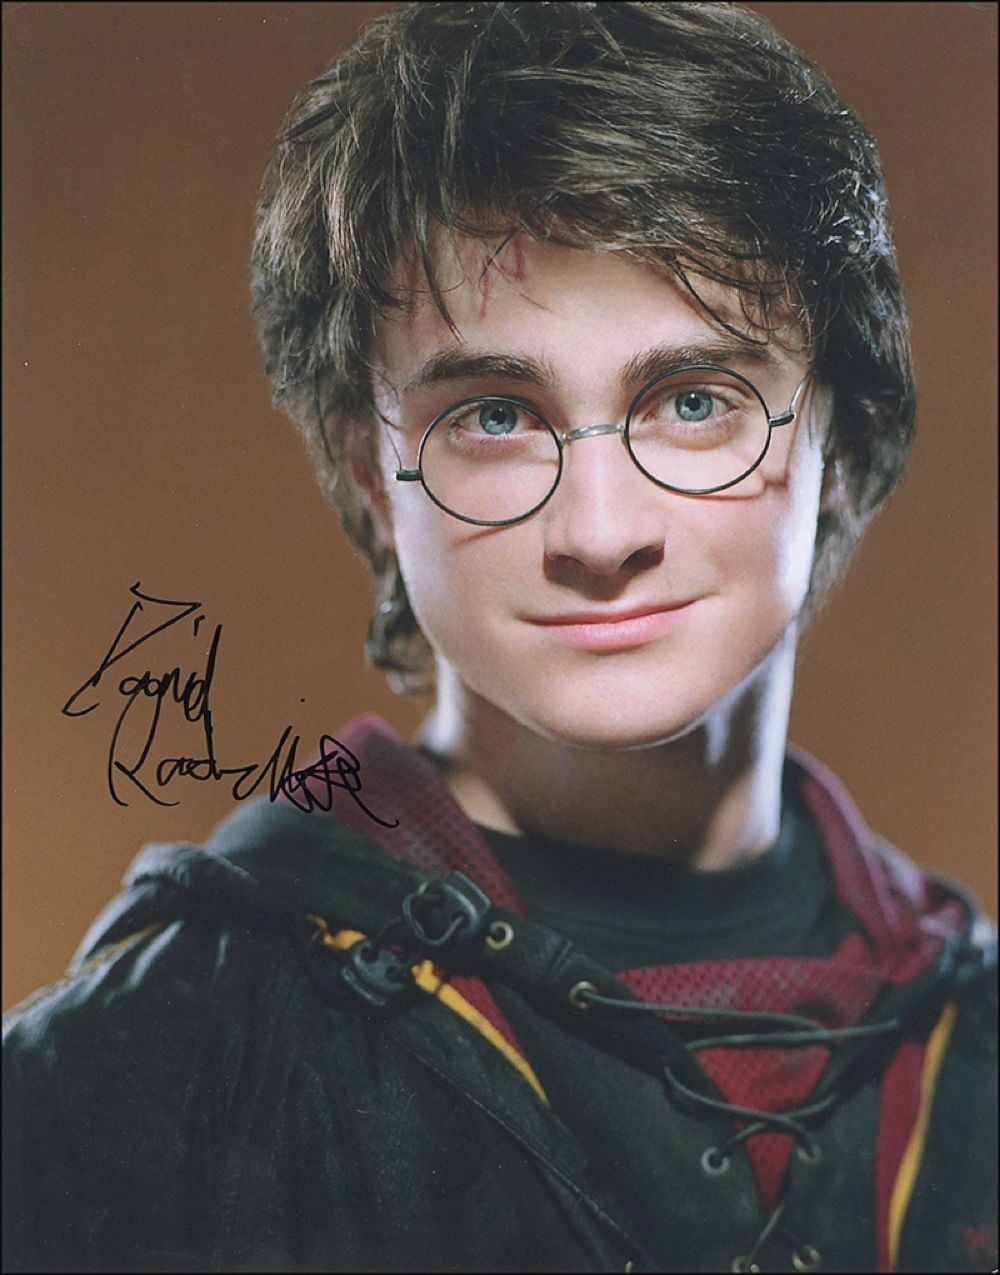 Daniel Radcliffe Harry Potter 2 Preprinted Hand Signed Autograph Photos 8x10 New In 2021 Daniel Radcliffe Harry Potter Daniel Radcliffe Harry Potter Portraits